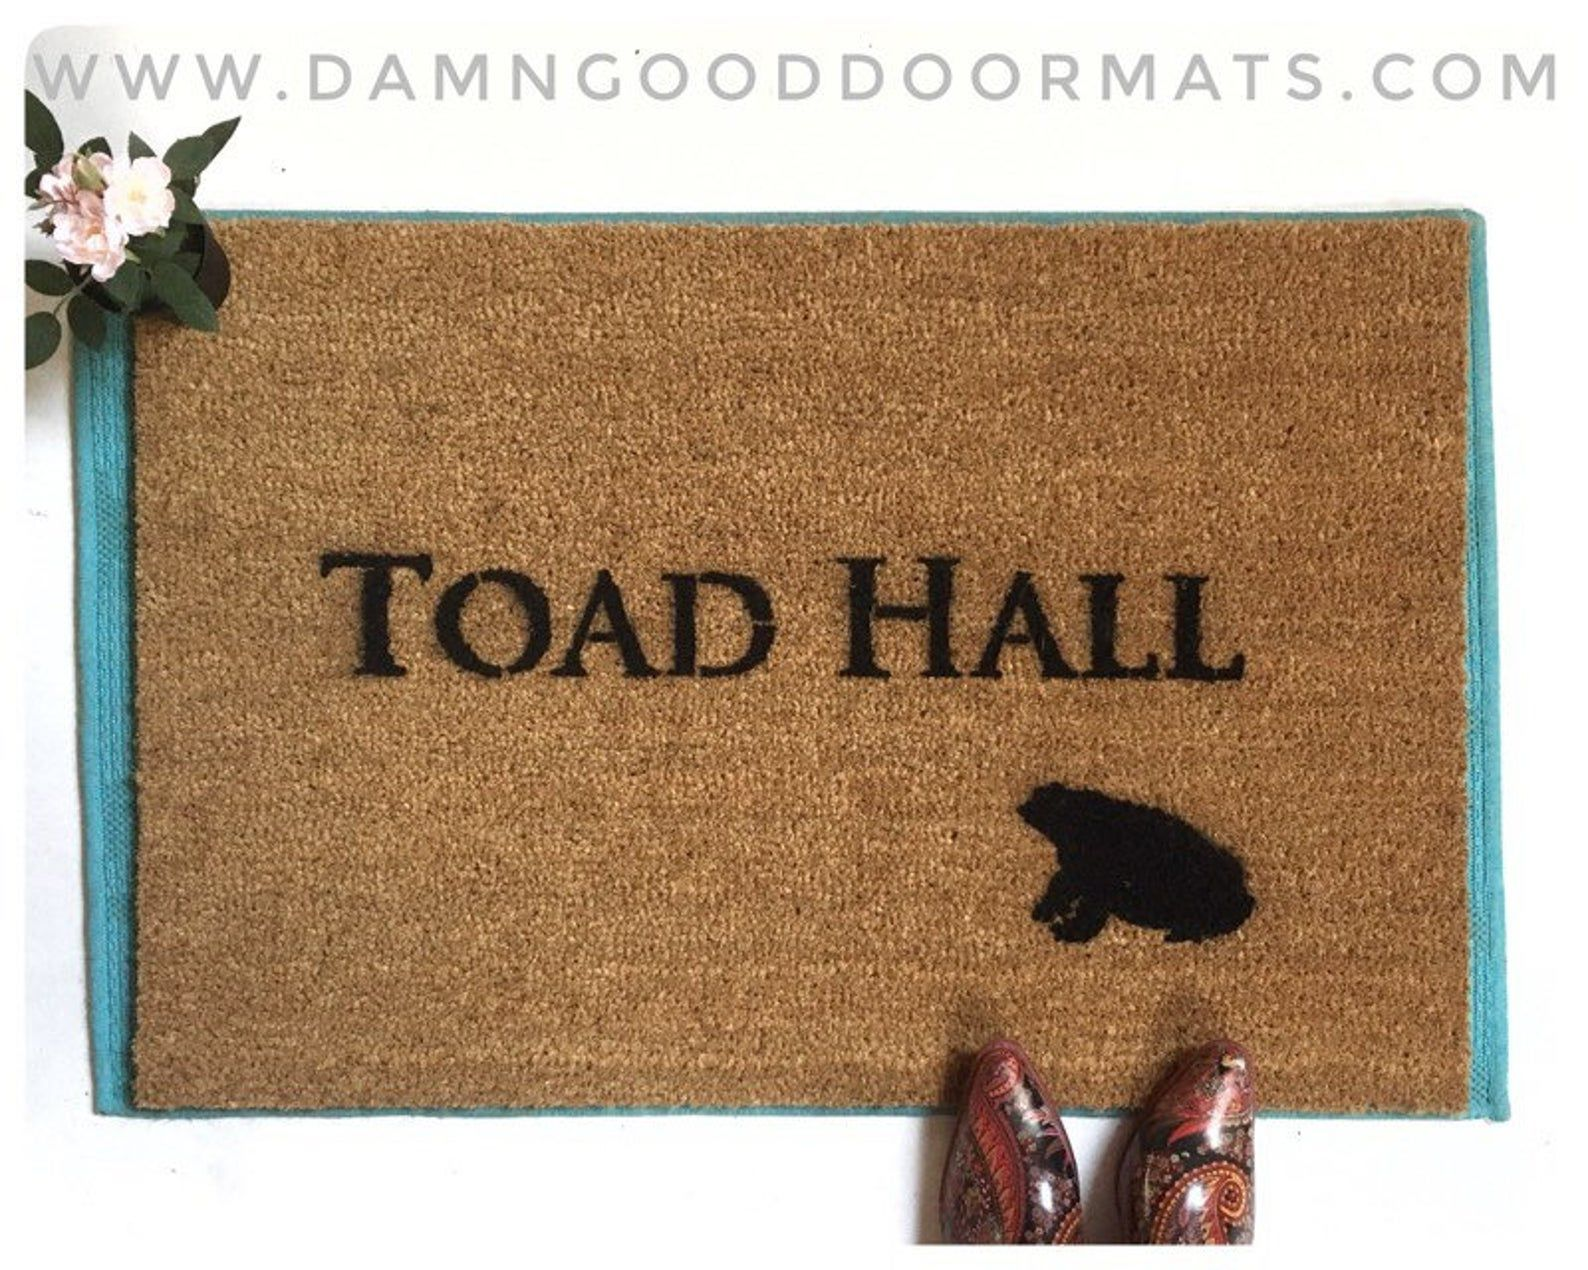 """Hand painted letters reading """"toad hall"""" with a small frog on a brown doormat. There is a pair of witchy shoes on the mat."""